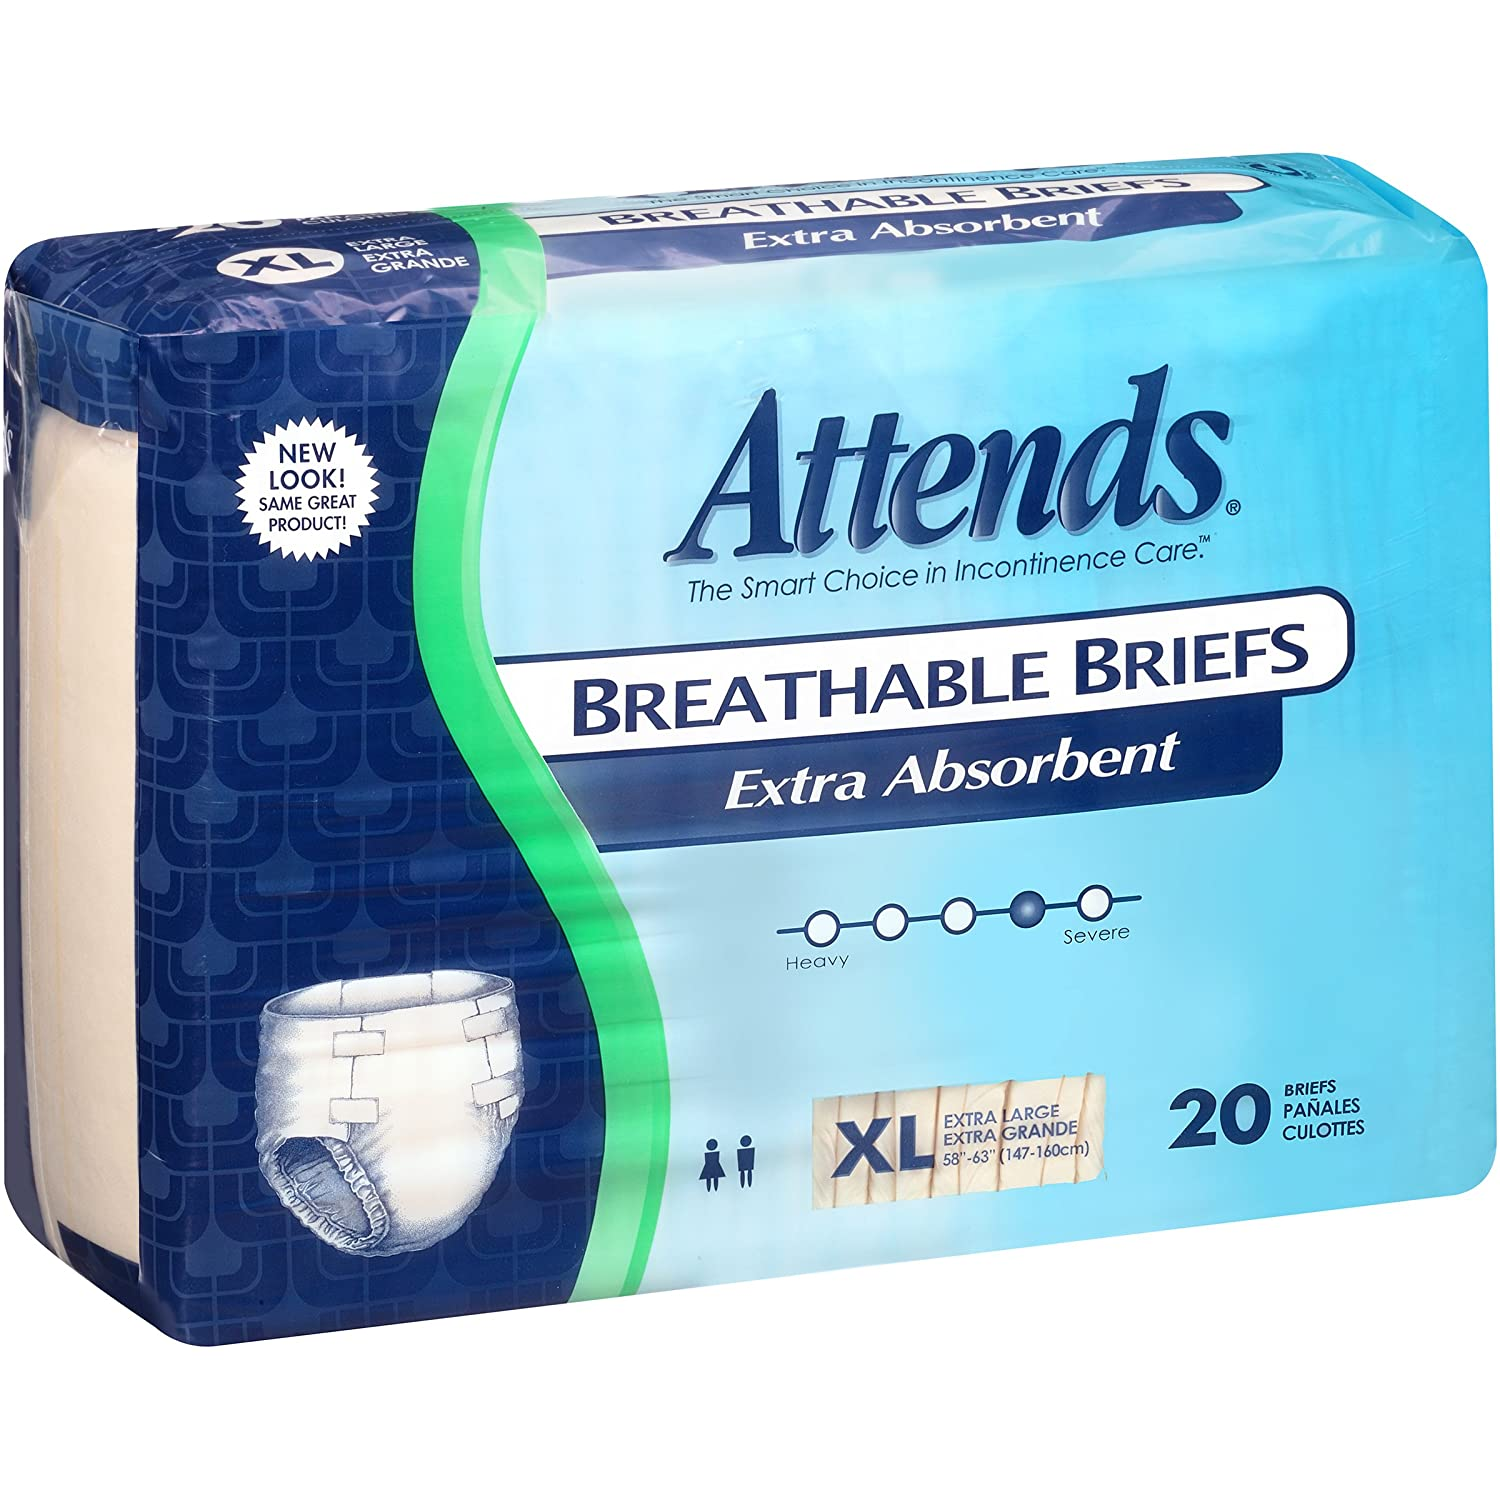 Amazon.com: Attends Breathable Briefs with Odor Shield for Adult Incontinence Care, Large, Unisex, 20 Count (Pack of 3): Health & Personal Care